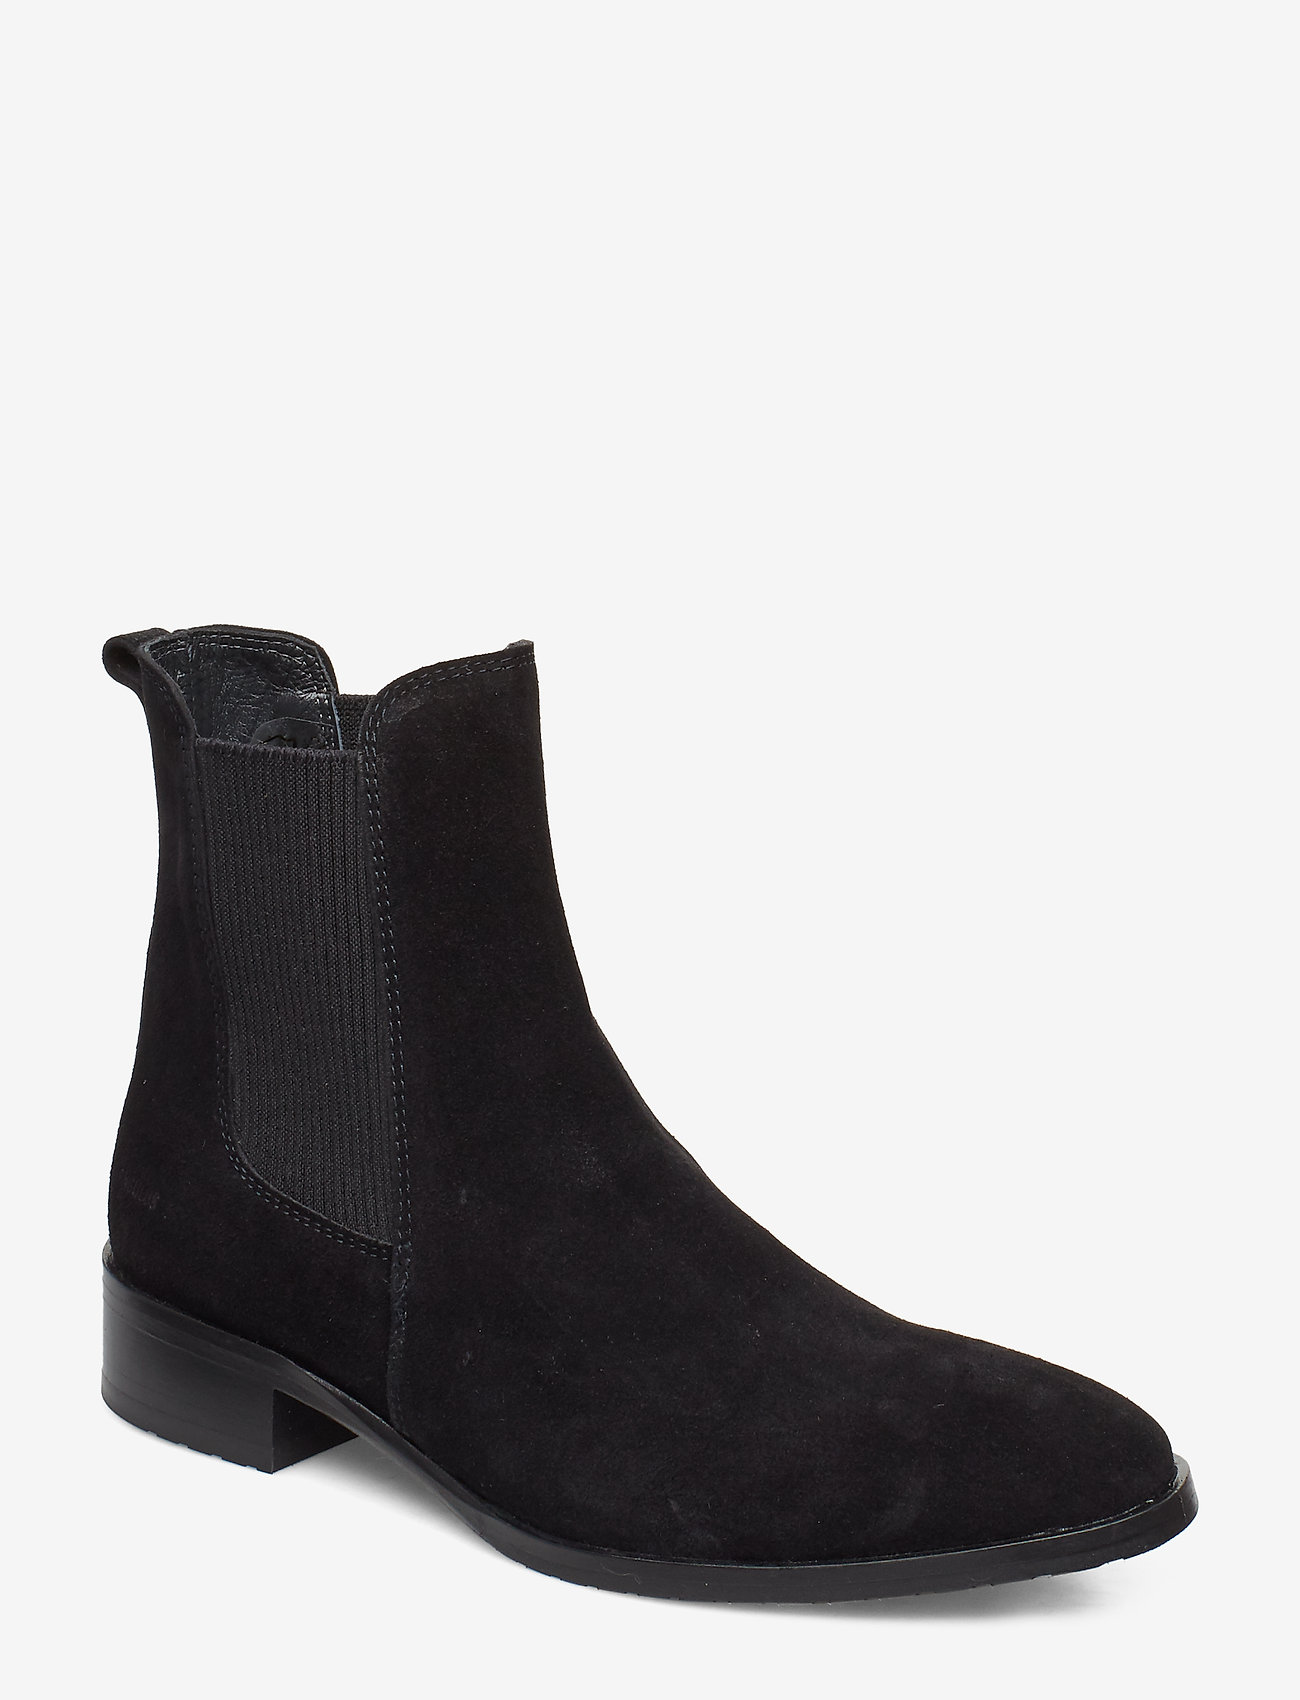 ANGULUS - Booties - flat - with elastic - chelsea boots - 1163/019 black/black - 0